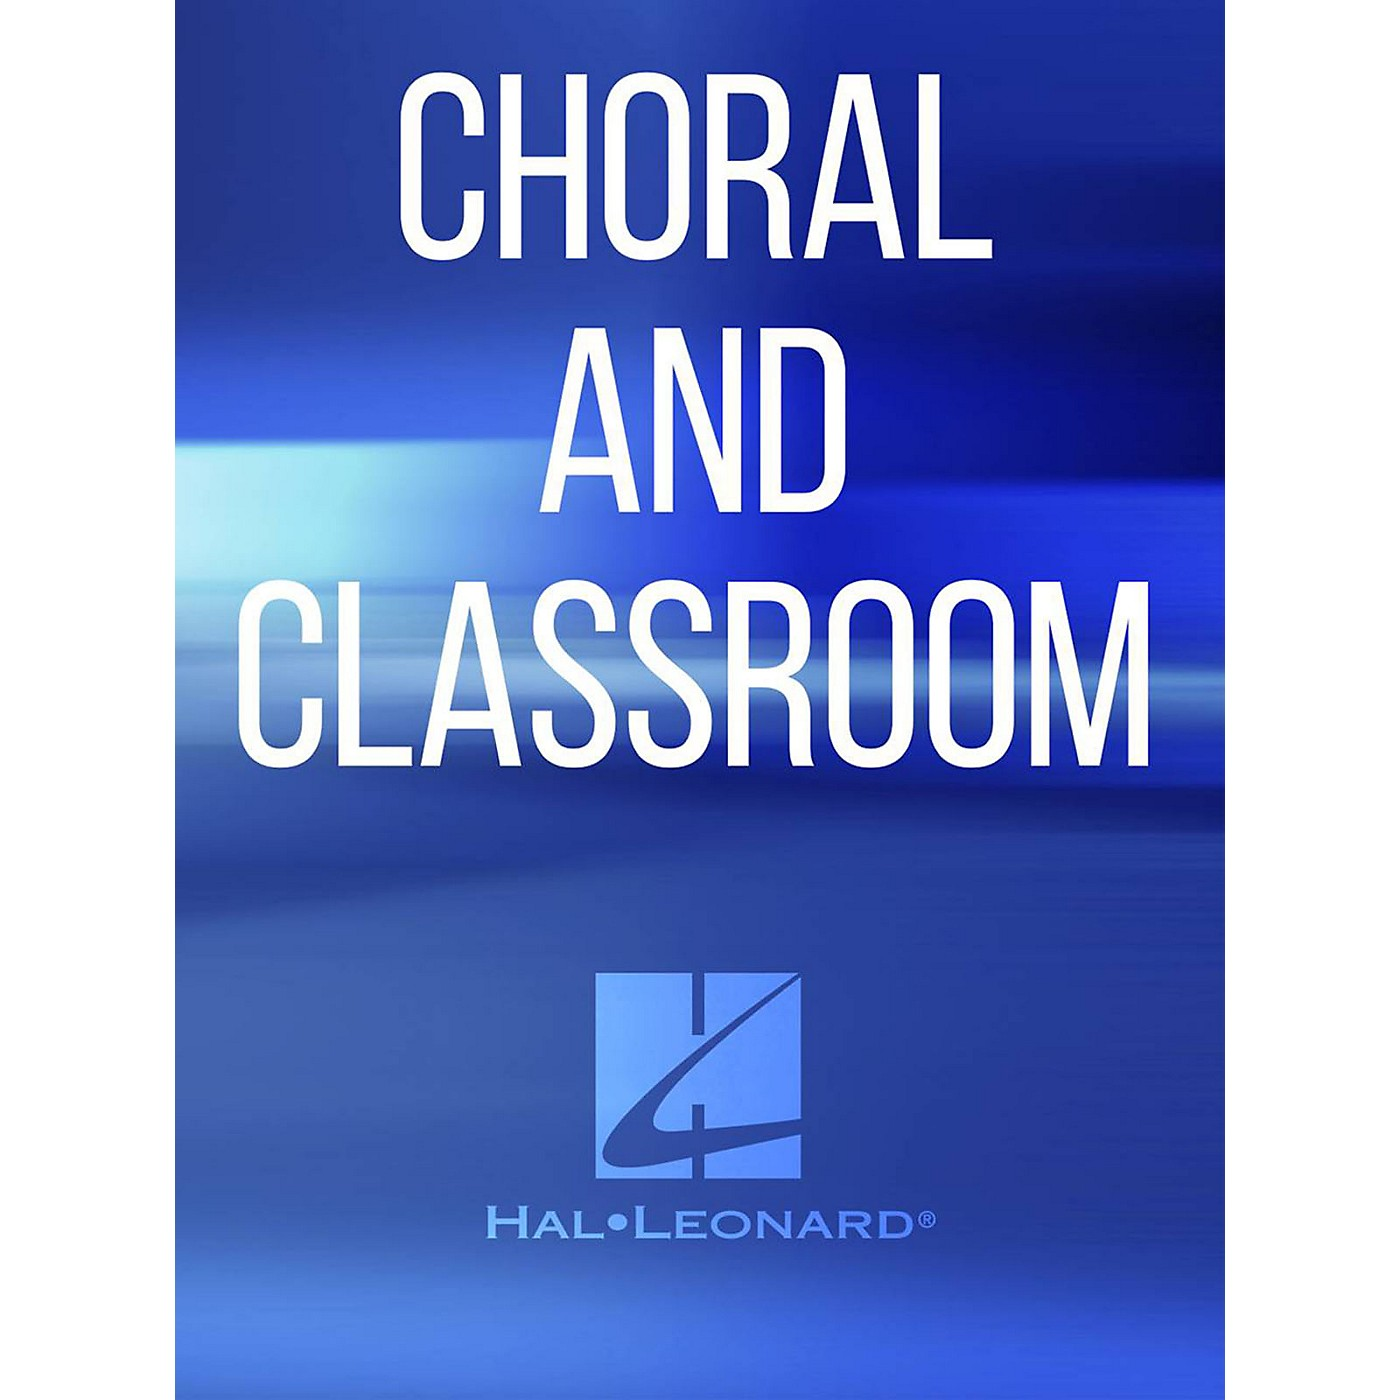 Hal Leonard Hit Me With Your Best Shot/One Way or Another ShowTrax CD by Glee Cast Arranged by Mac Huff thumbnail